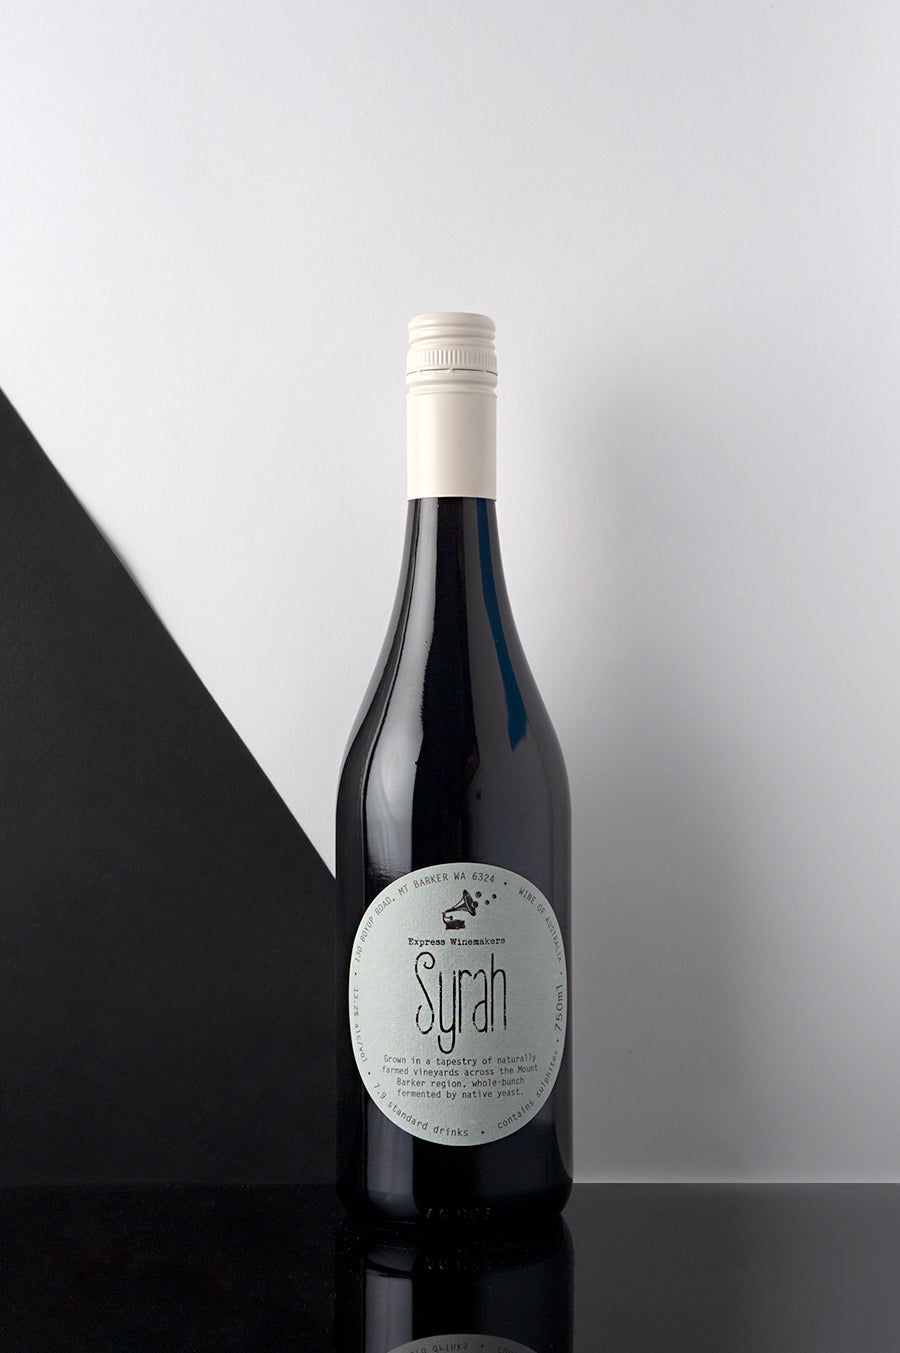 Express Winemakers Syrah 2018